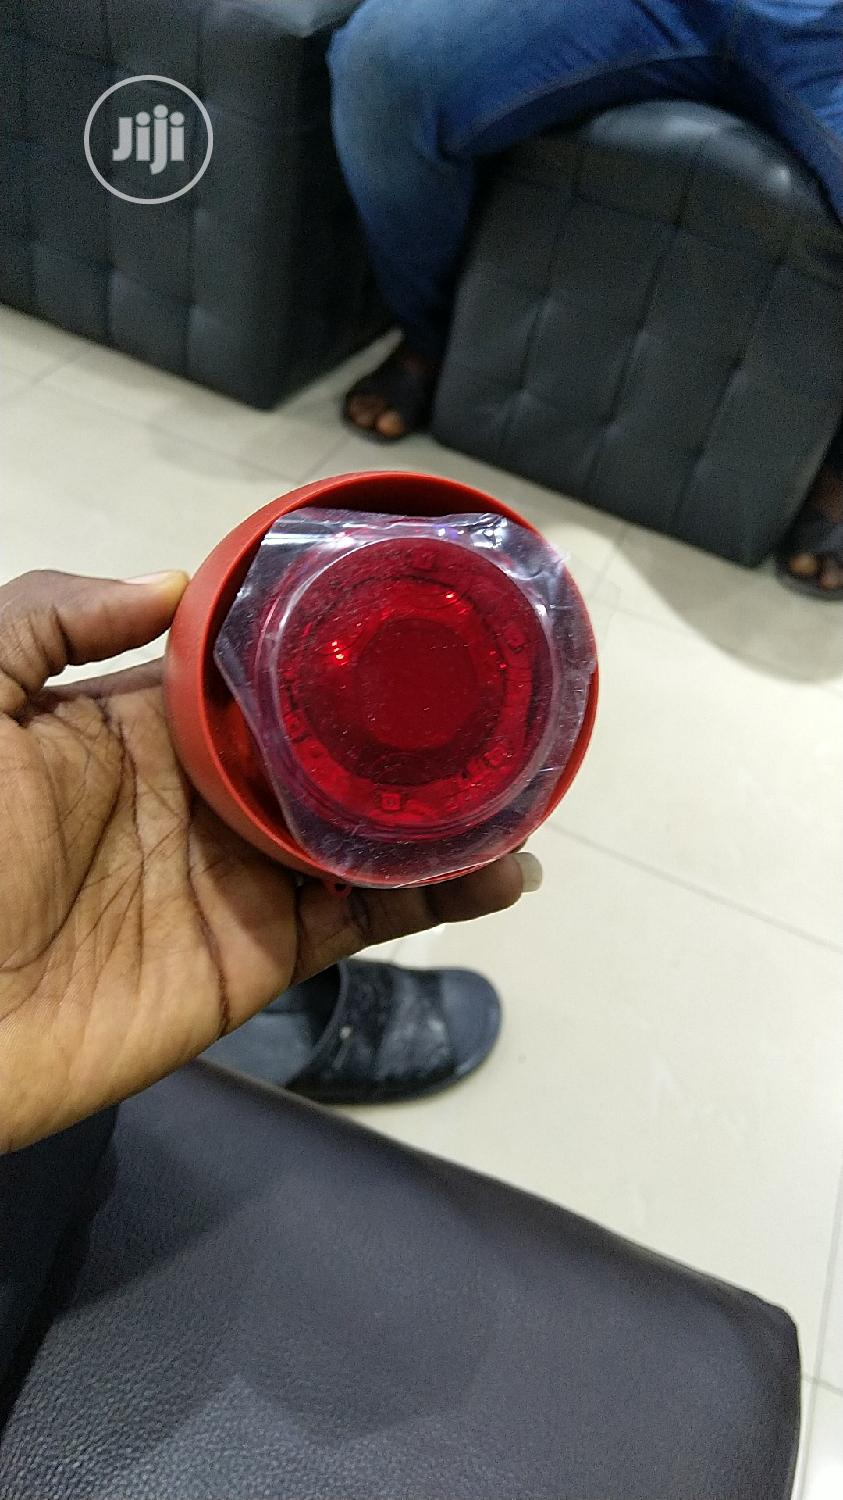 C.Tec Conventional Sounder Strobe Light   Home Accessories for sale in Ikoyi, Lagos State, Nigeria